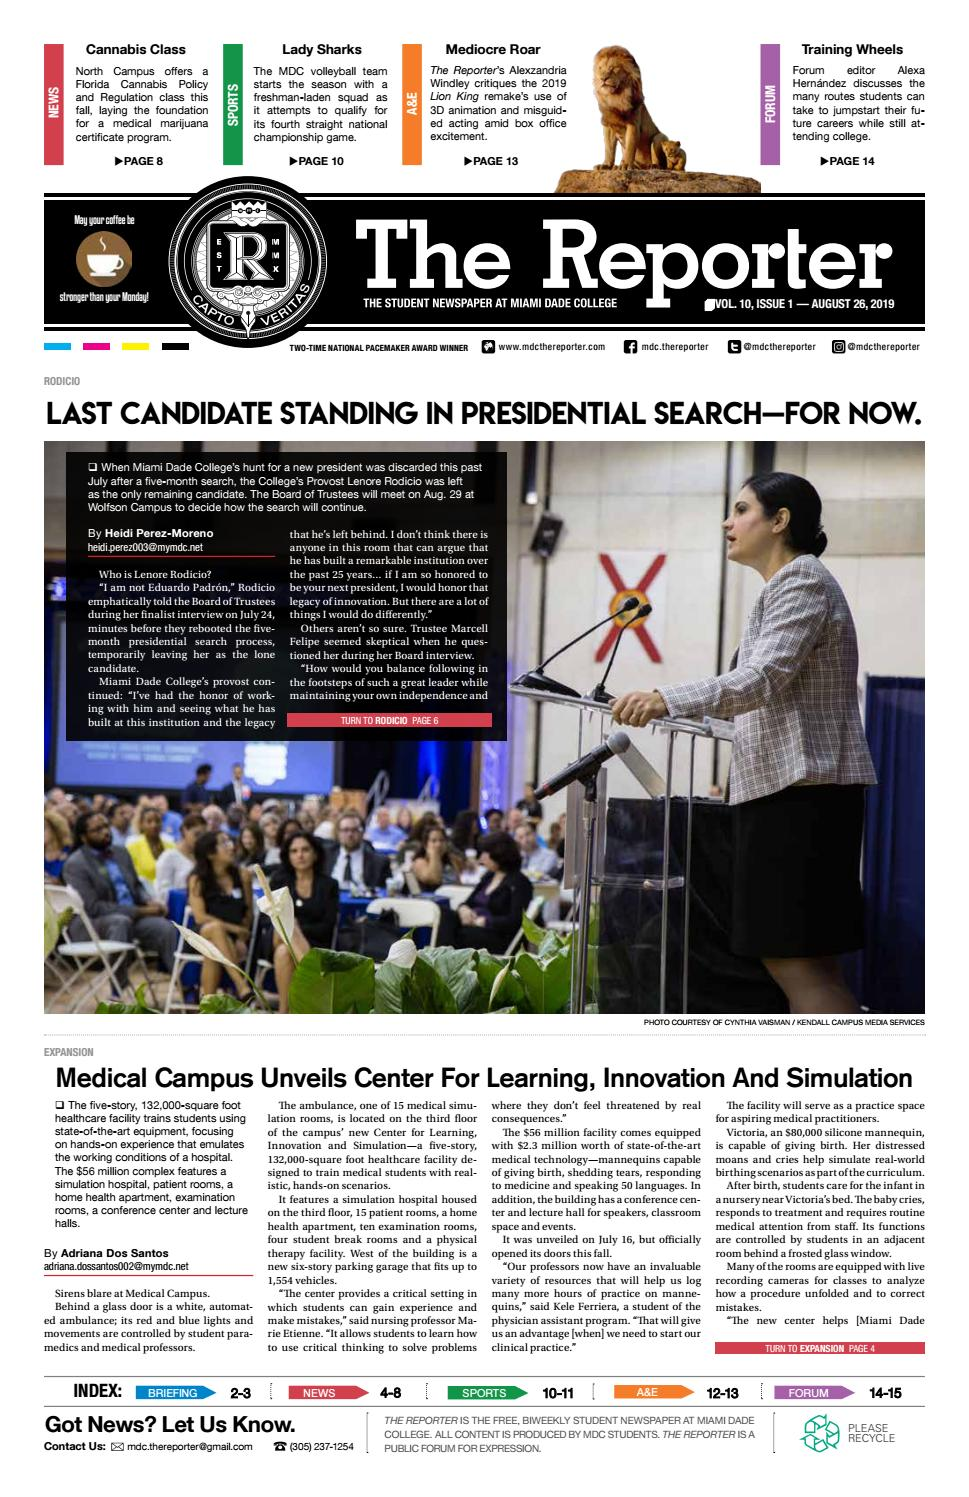 The Reporter Volume 10 Issue 1 by MDC The Reporter - issuu